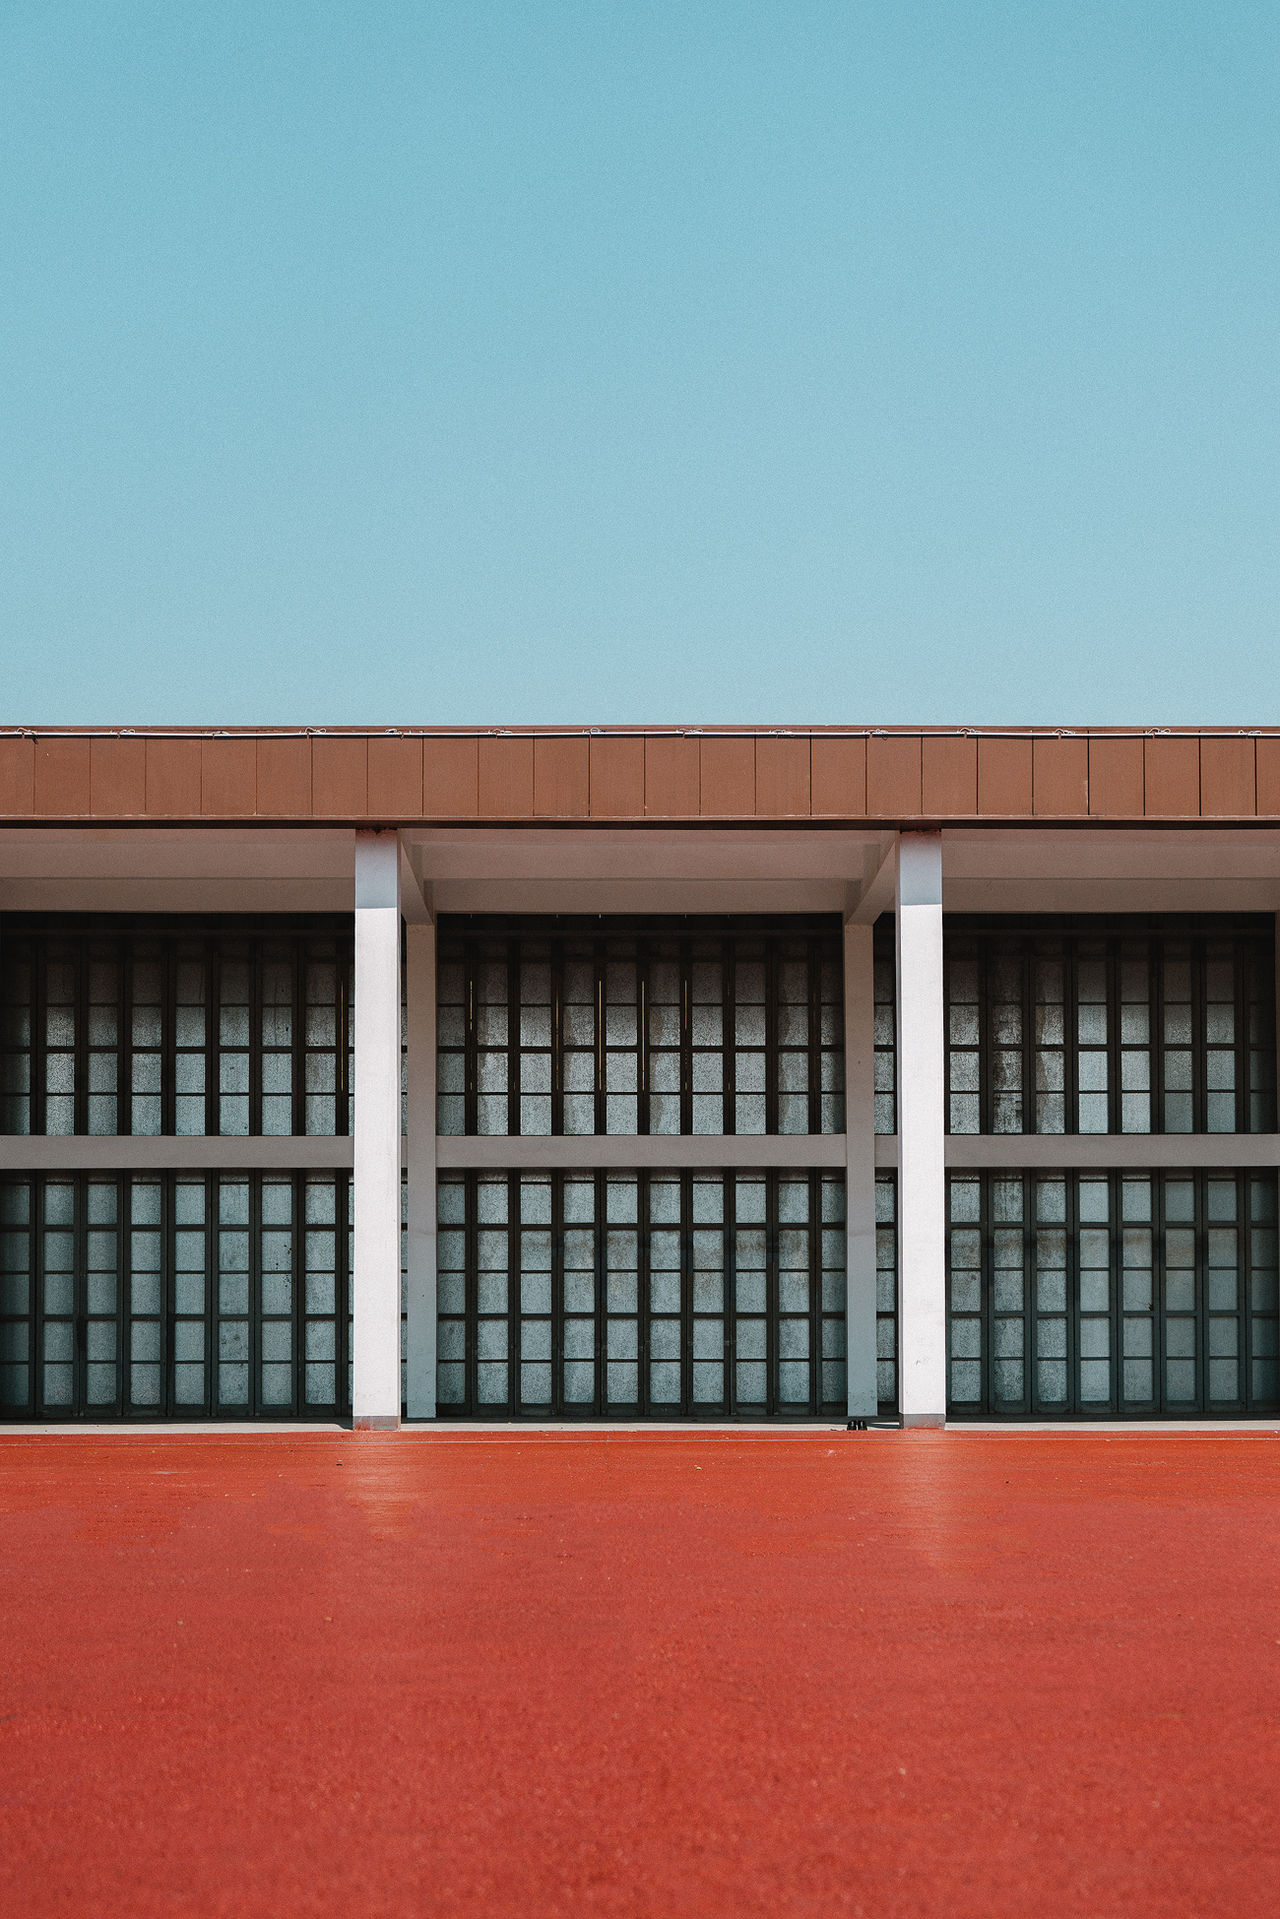 Architecture Building Exterior Built Structure Colors Day No People Outdoors